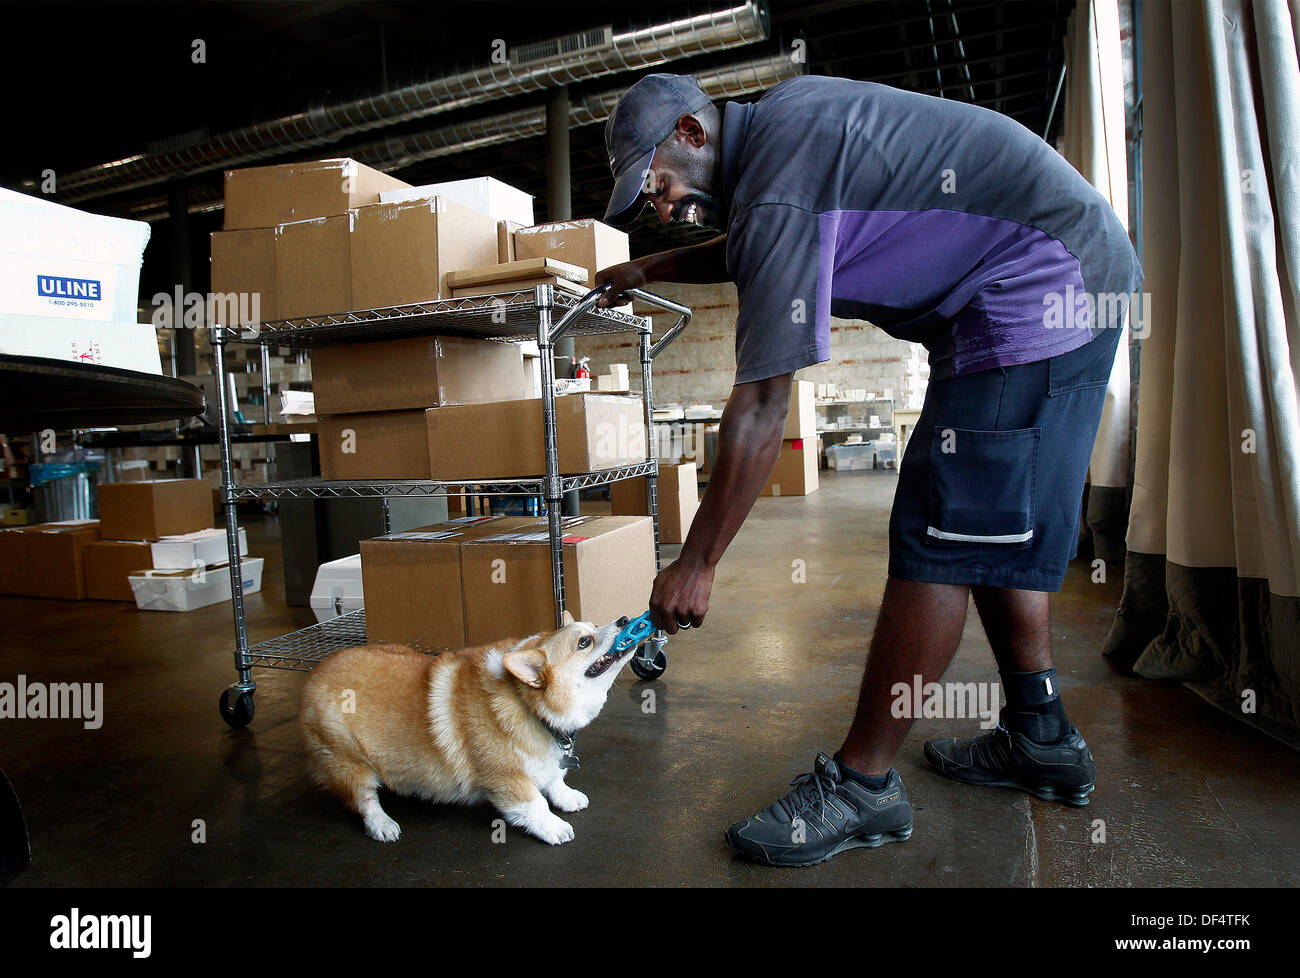 Sept. 18, 2013 - Memphis, Tenn, U.S. - September 18, 2013 - FedEx delivery driver Robert Johnson (right) plays with Stock Photo